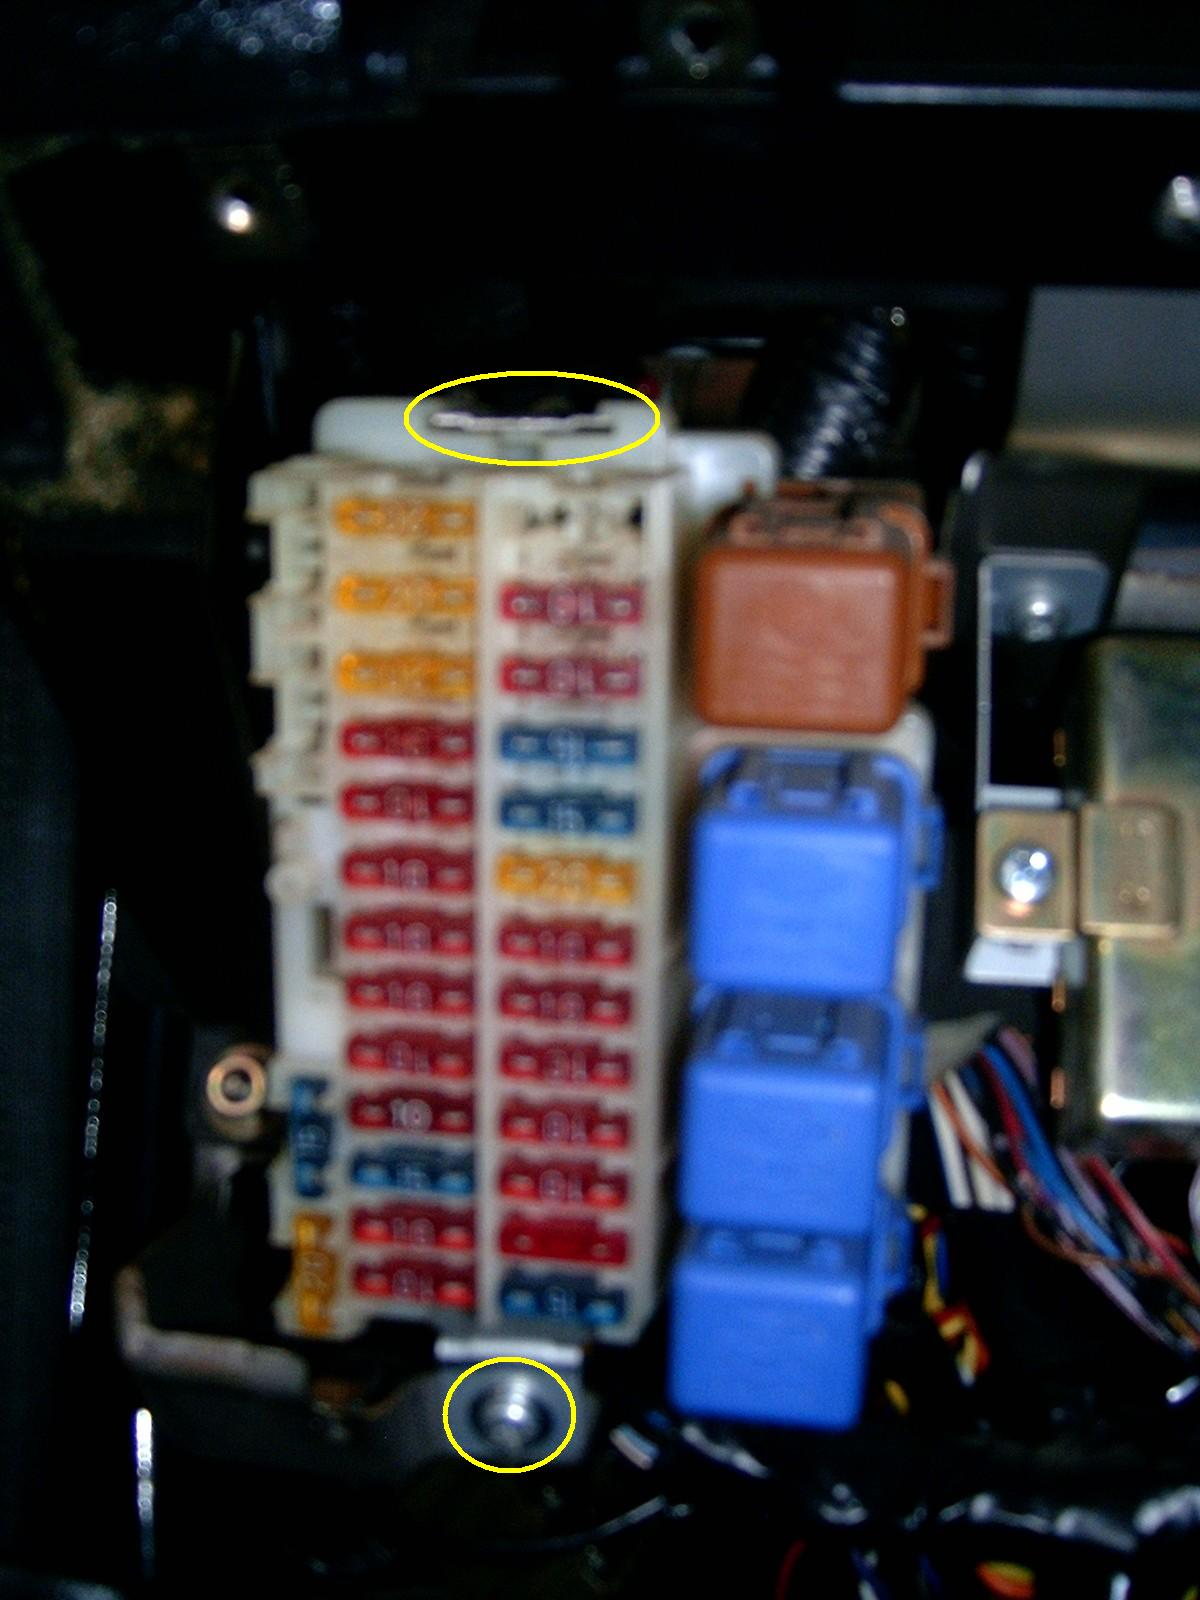 nissan_maxima_dash_removal_18 nissan maxima digital dash hud tutorial 2006 nissan maxima fuse box diagram at nearapp.co